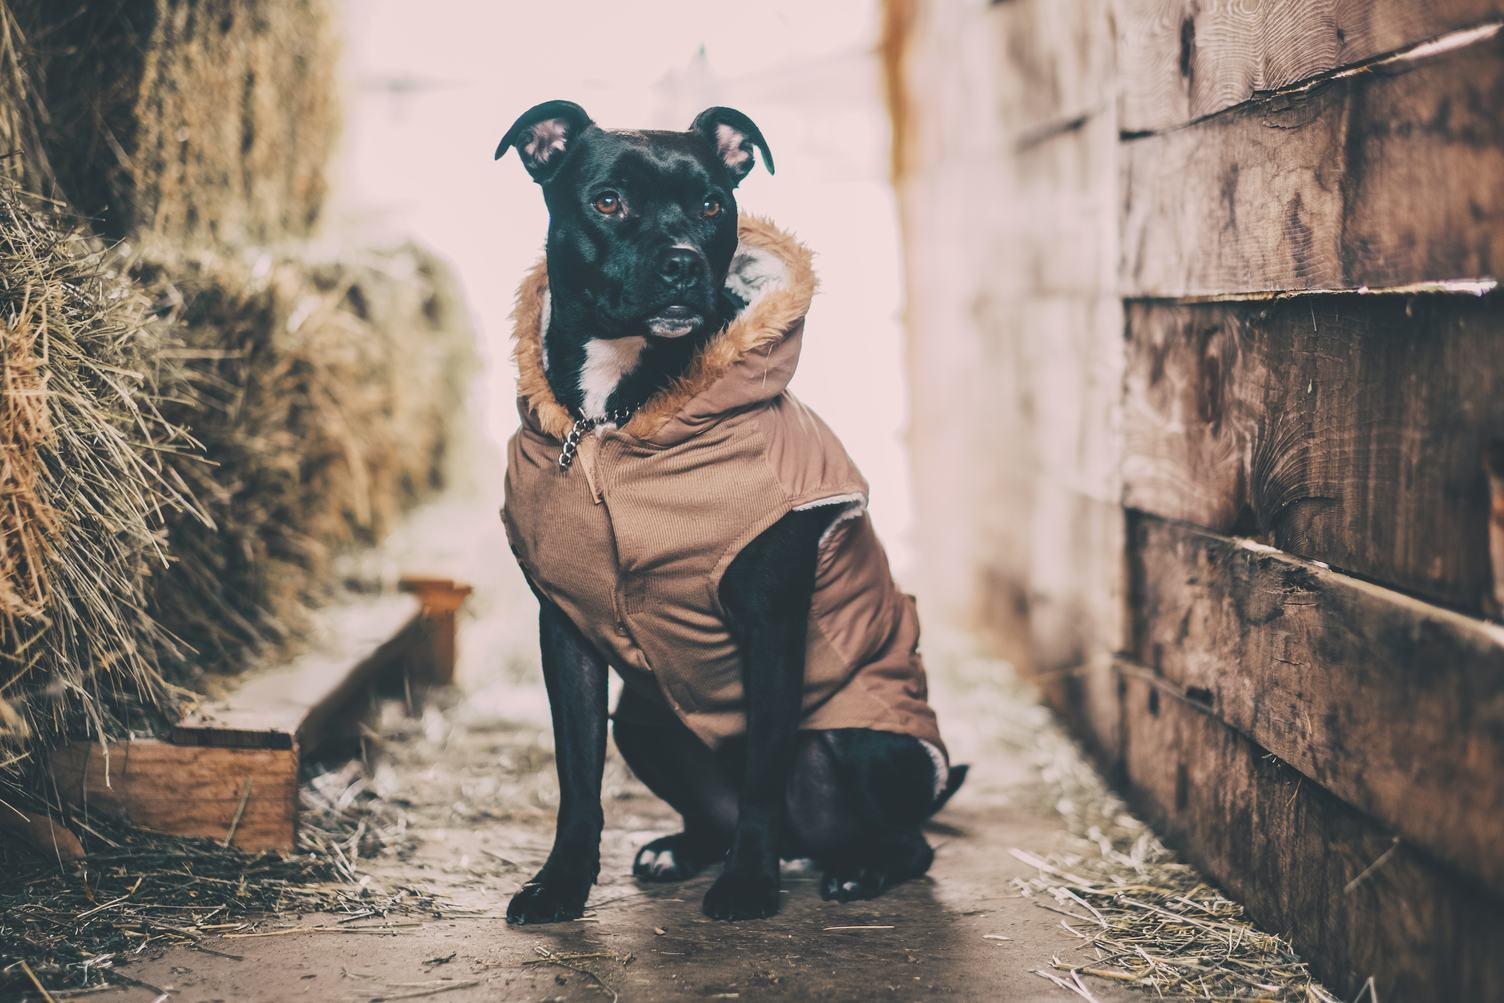 Black Dog  in Barn Wearing Clothing